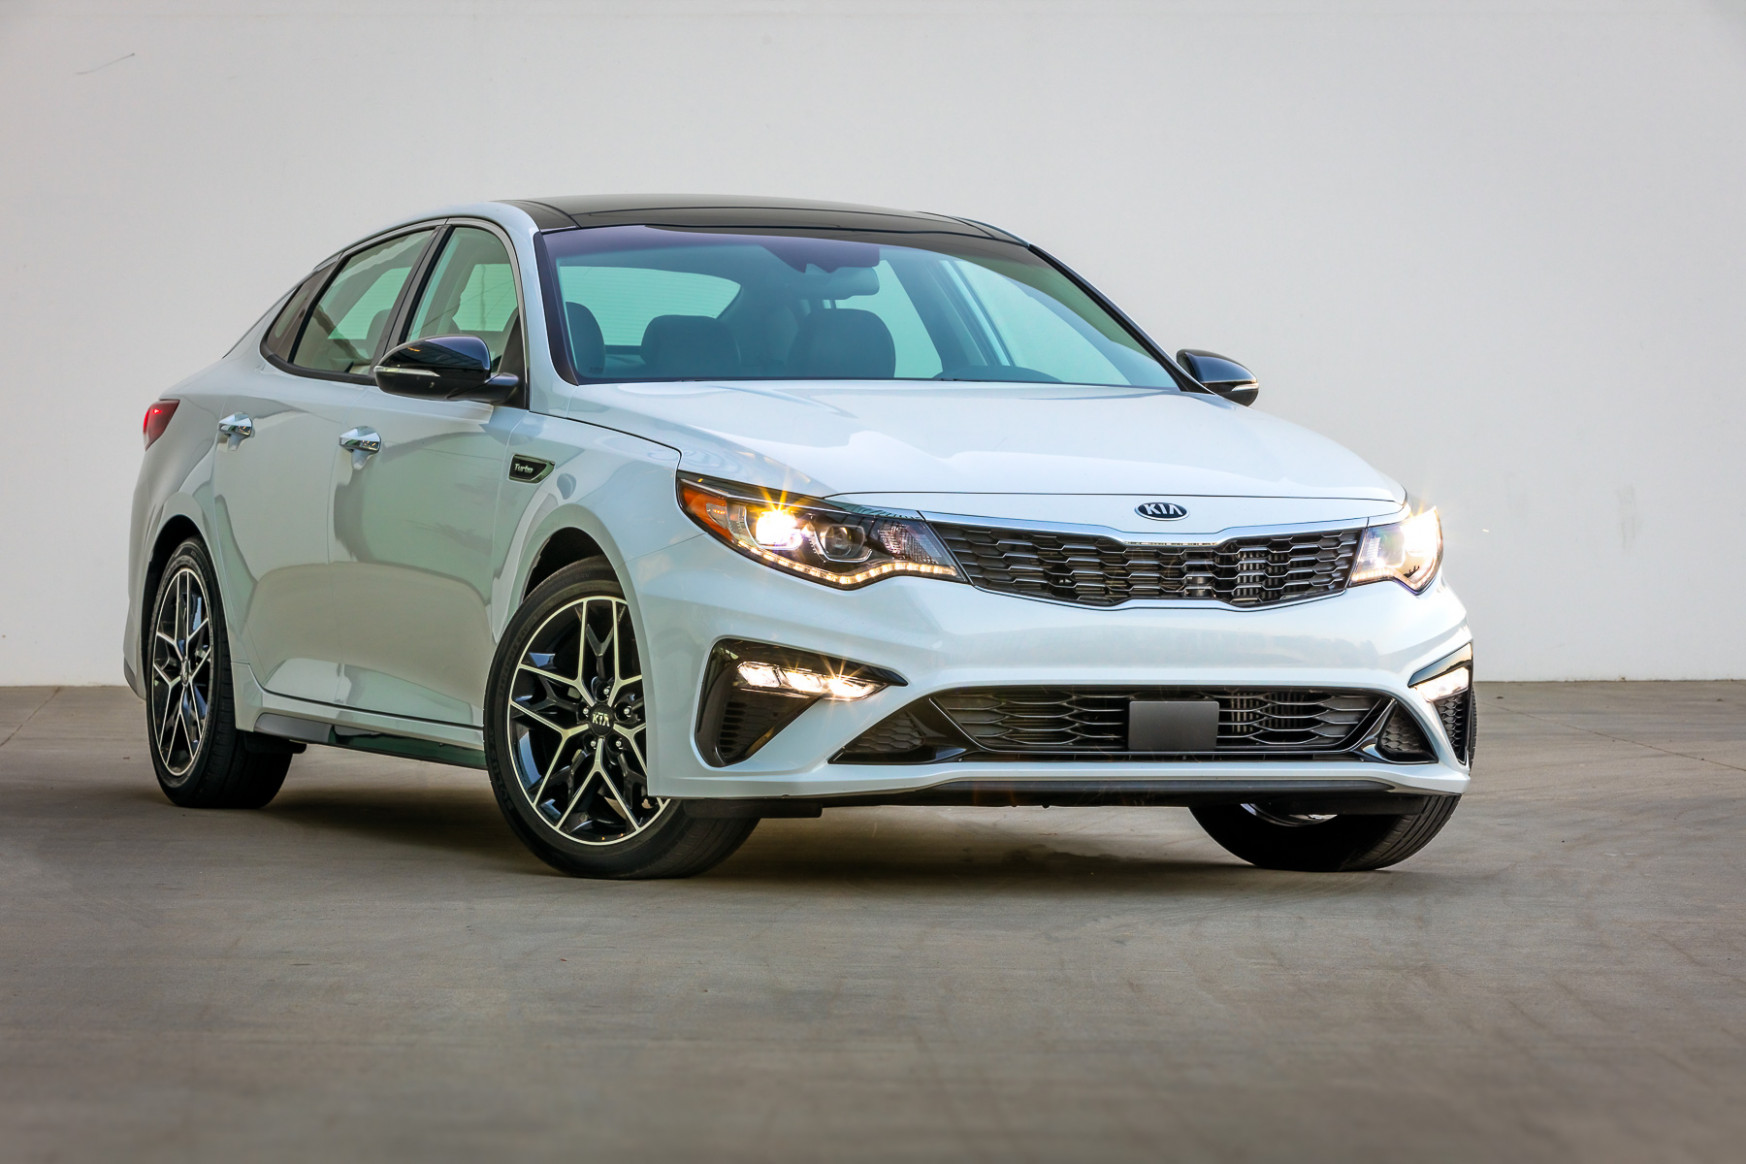 7 Kia Optima Review, Ratings, Specs, Prices, and Photos - The ..